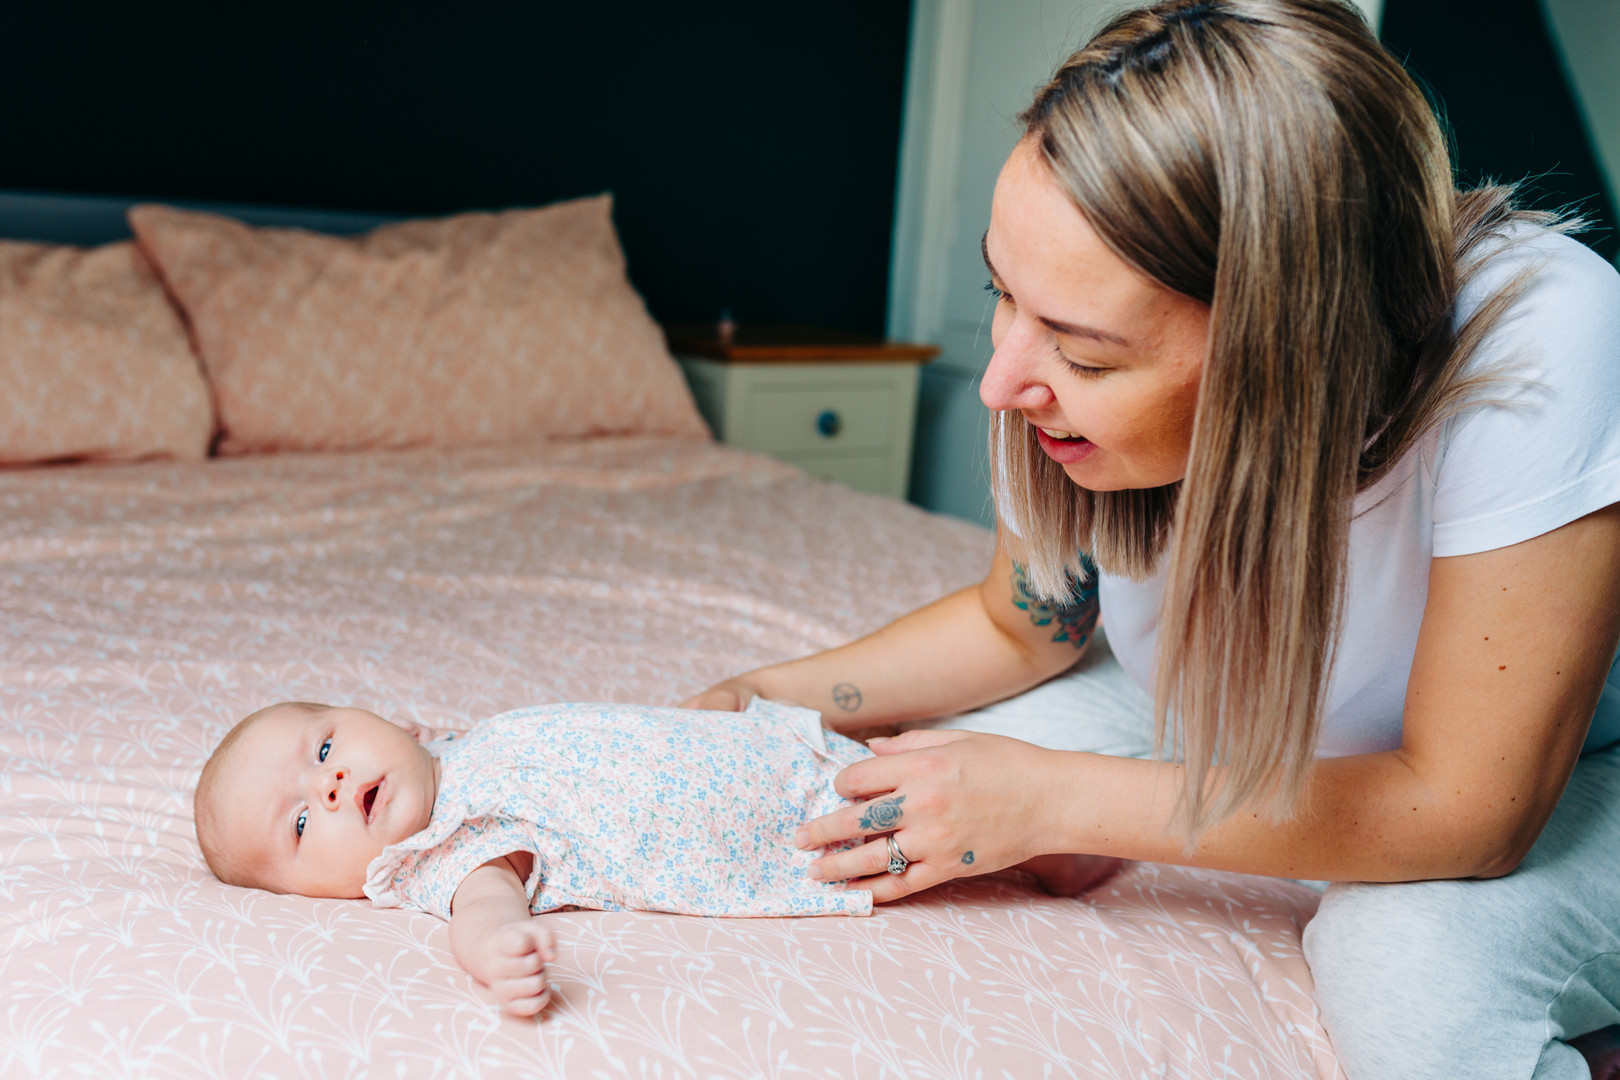 Baby on bed with mum looking lovingly. Newborn lifestyle photoshoot pose ideas.